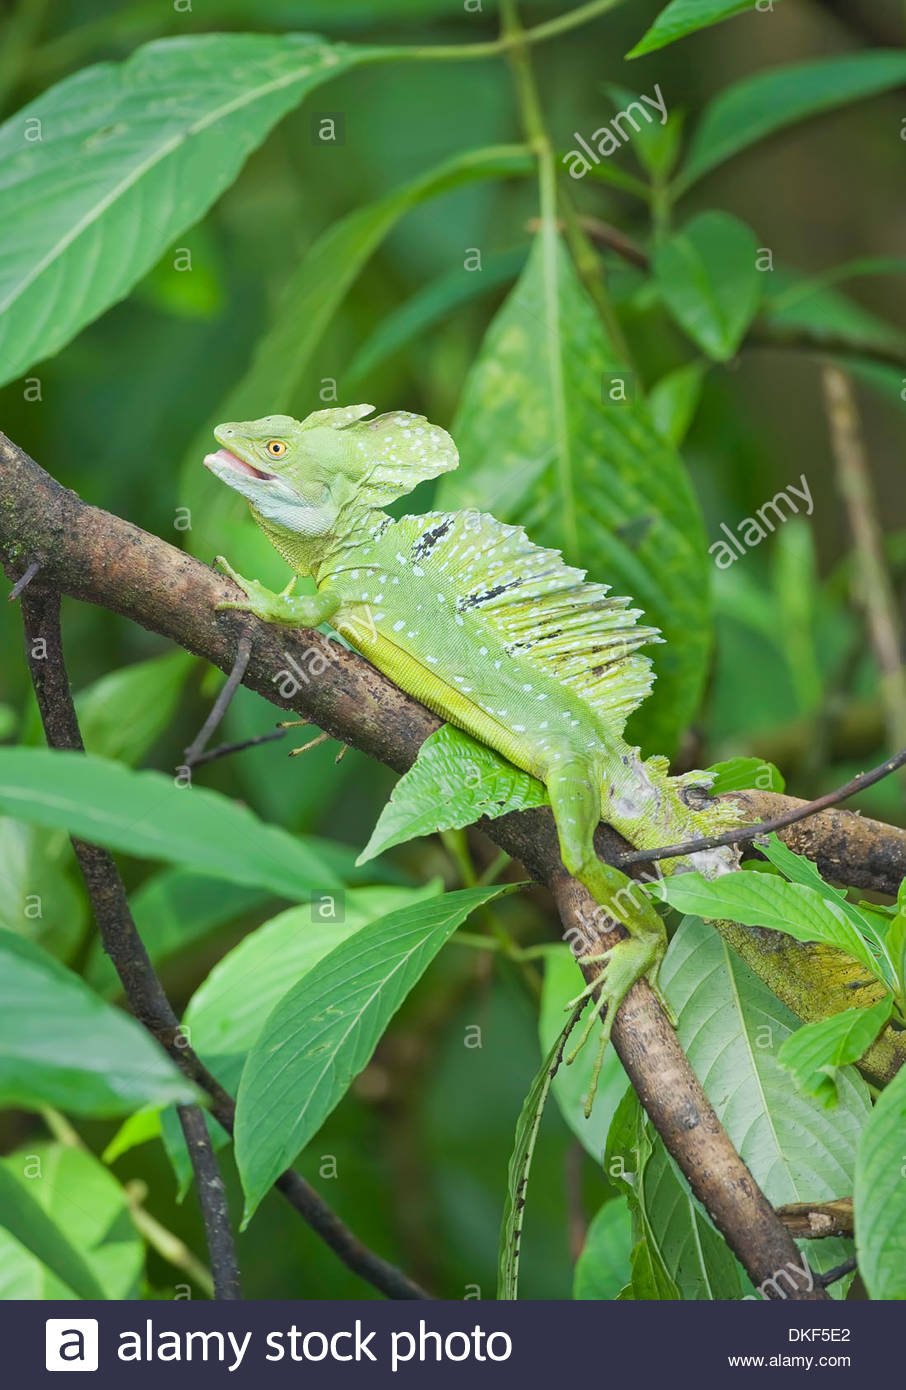 Basilisk lizard (Basiliscus plumifrons) on tree branch, Costa Rica Stock Photo